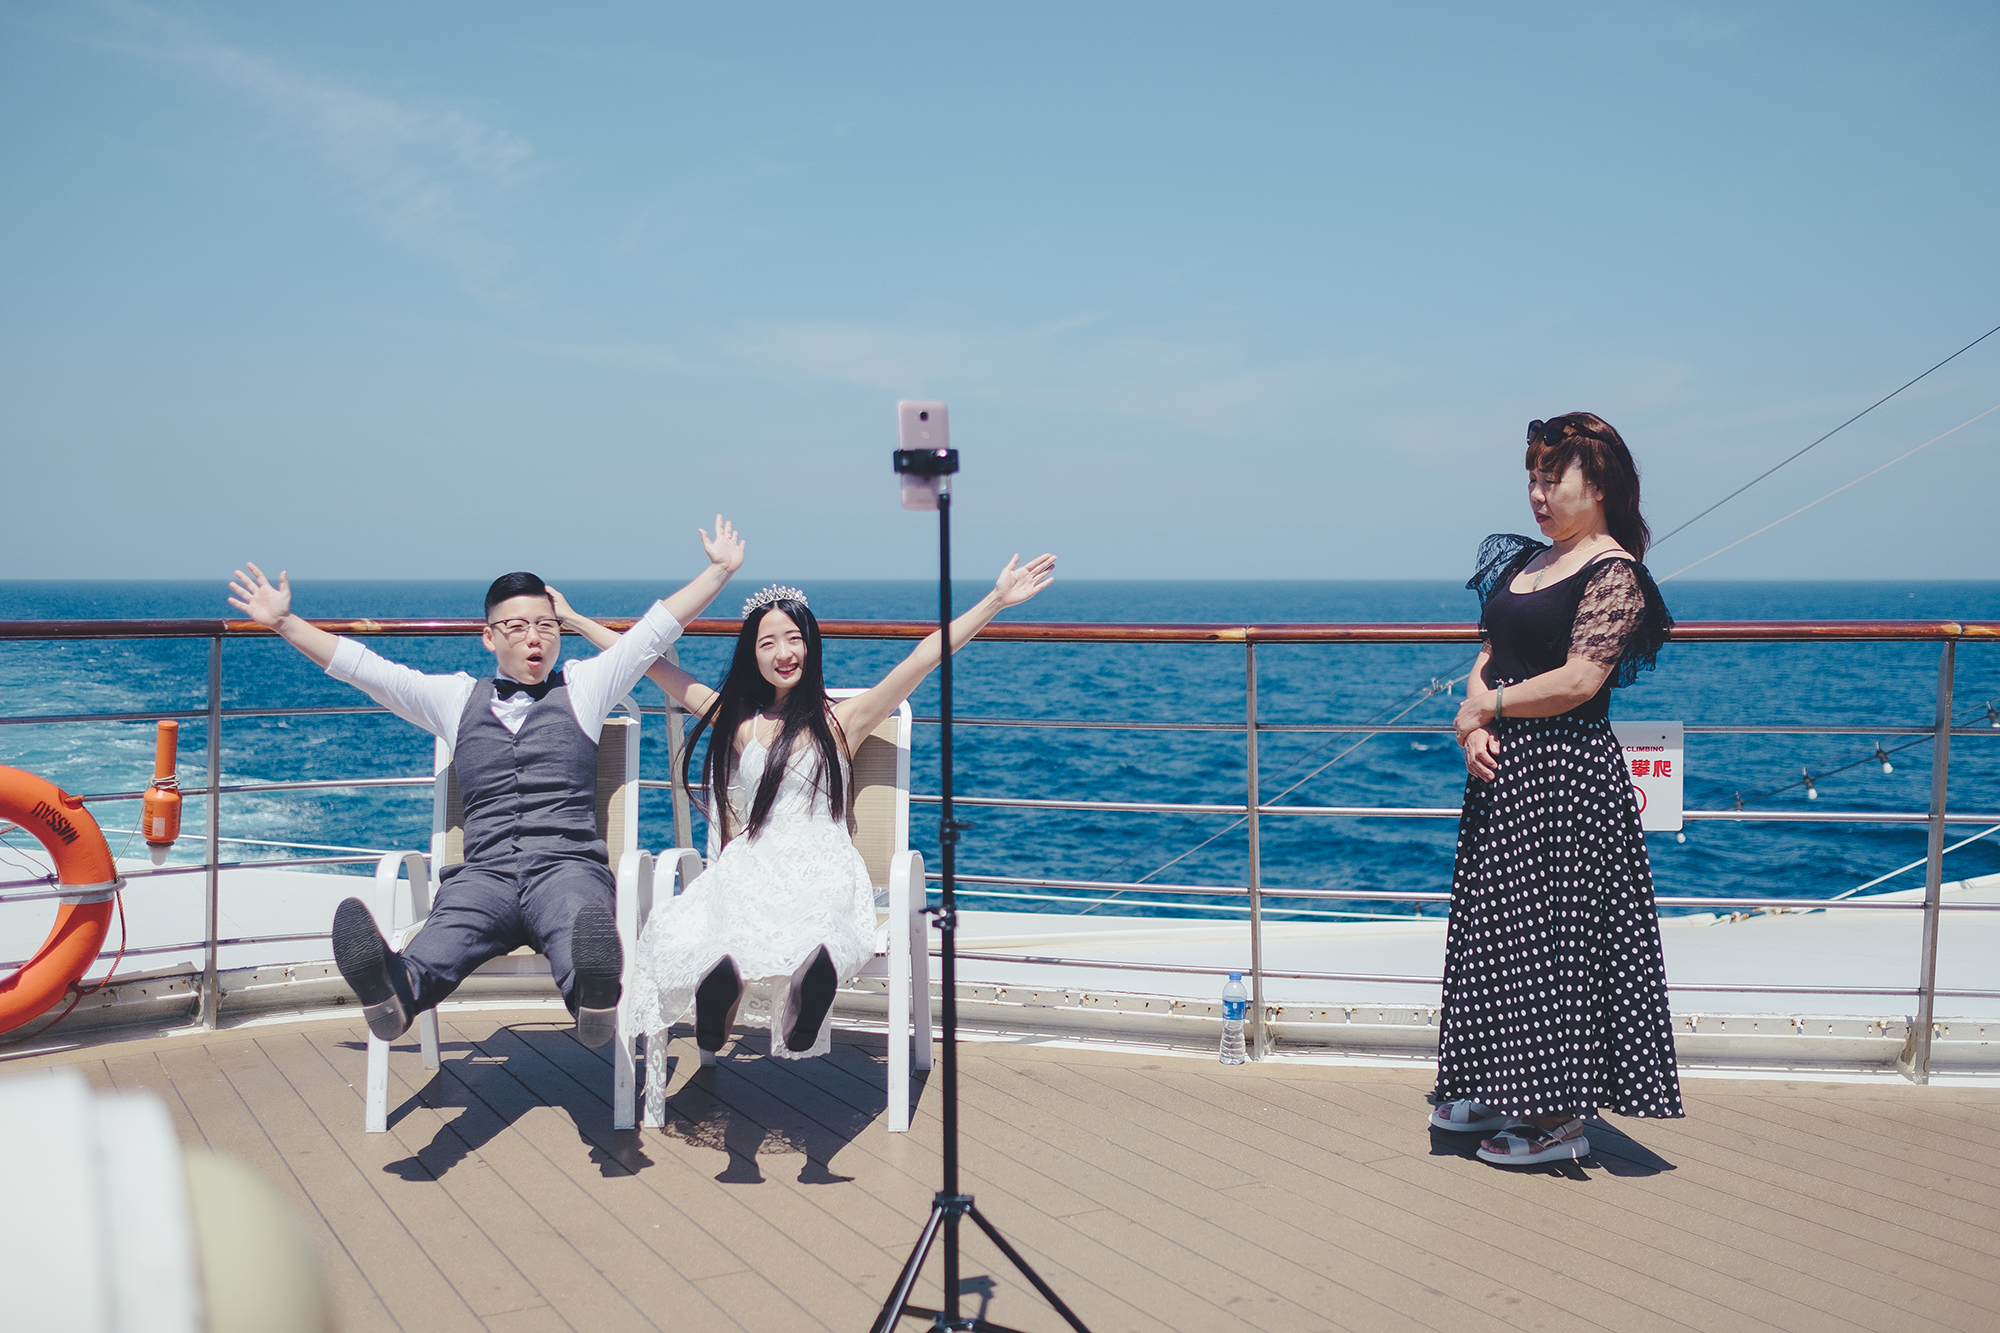 In the morning, Yang and Chen pose for wedding photos on the deck. Chen's mother, Mrs. Zheng (right), who is the couple's only parent on board, looks on.